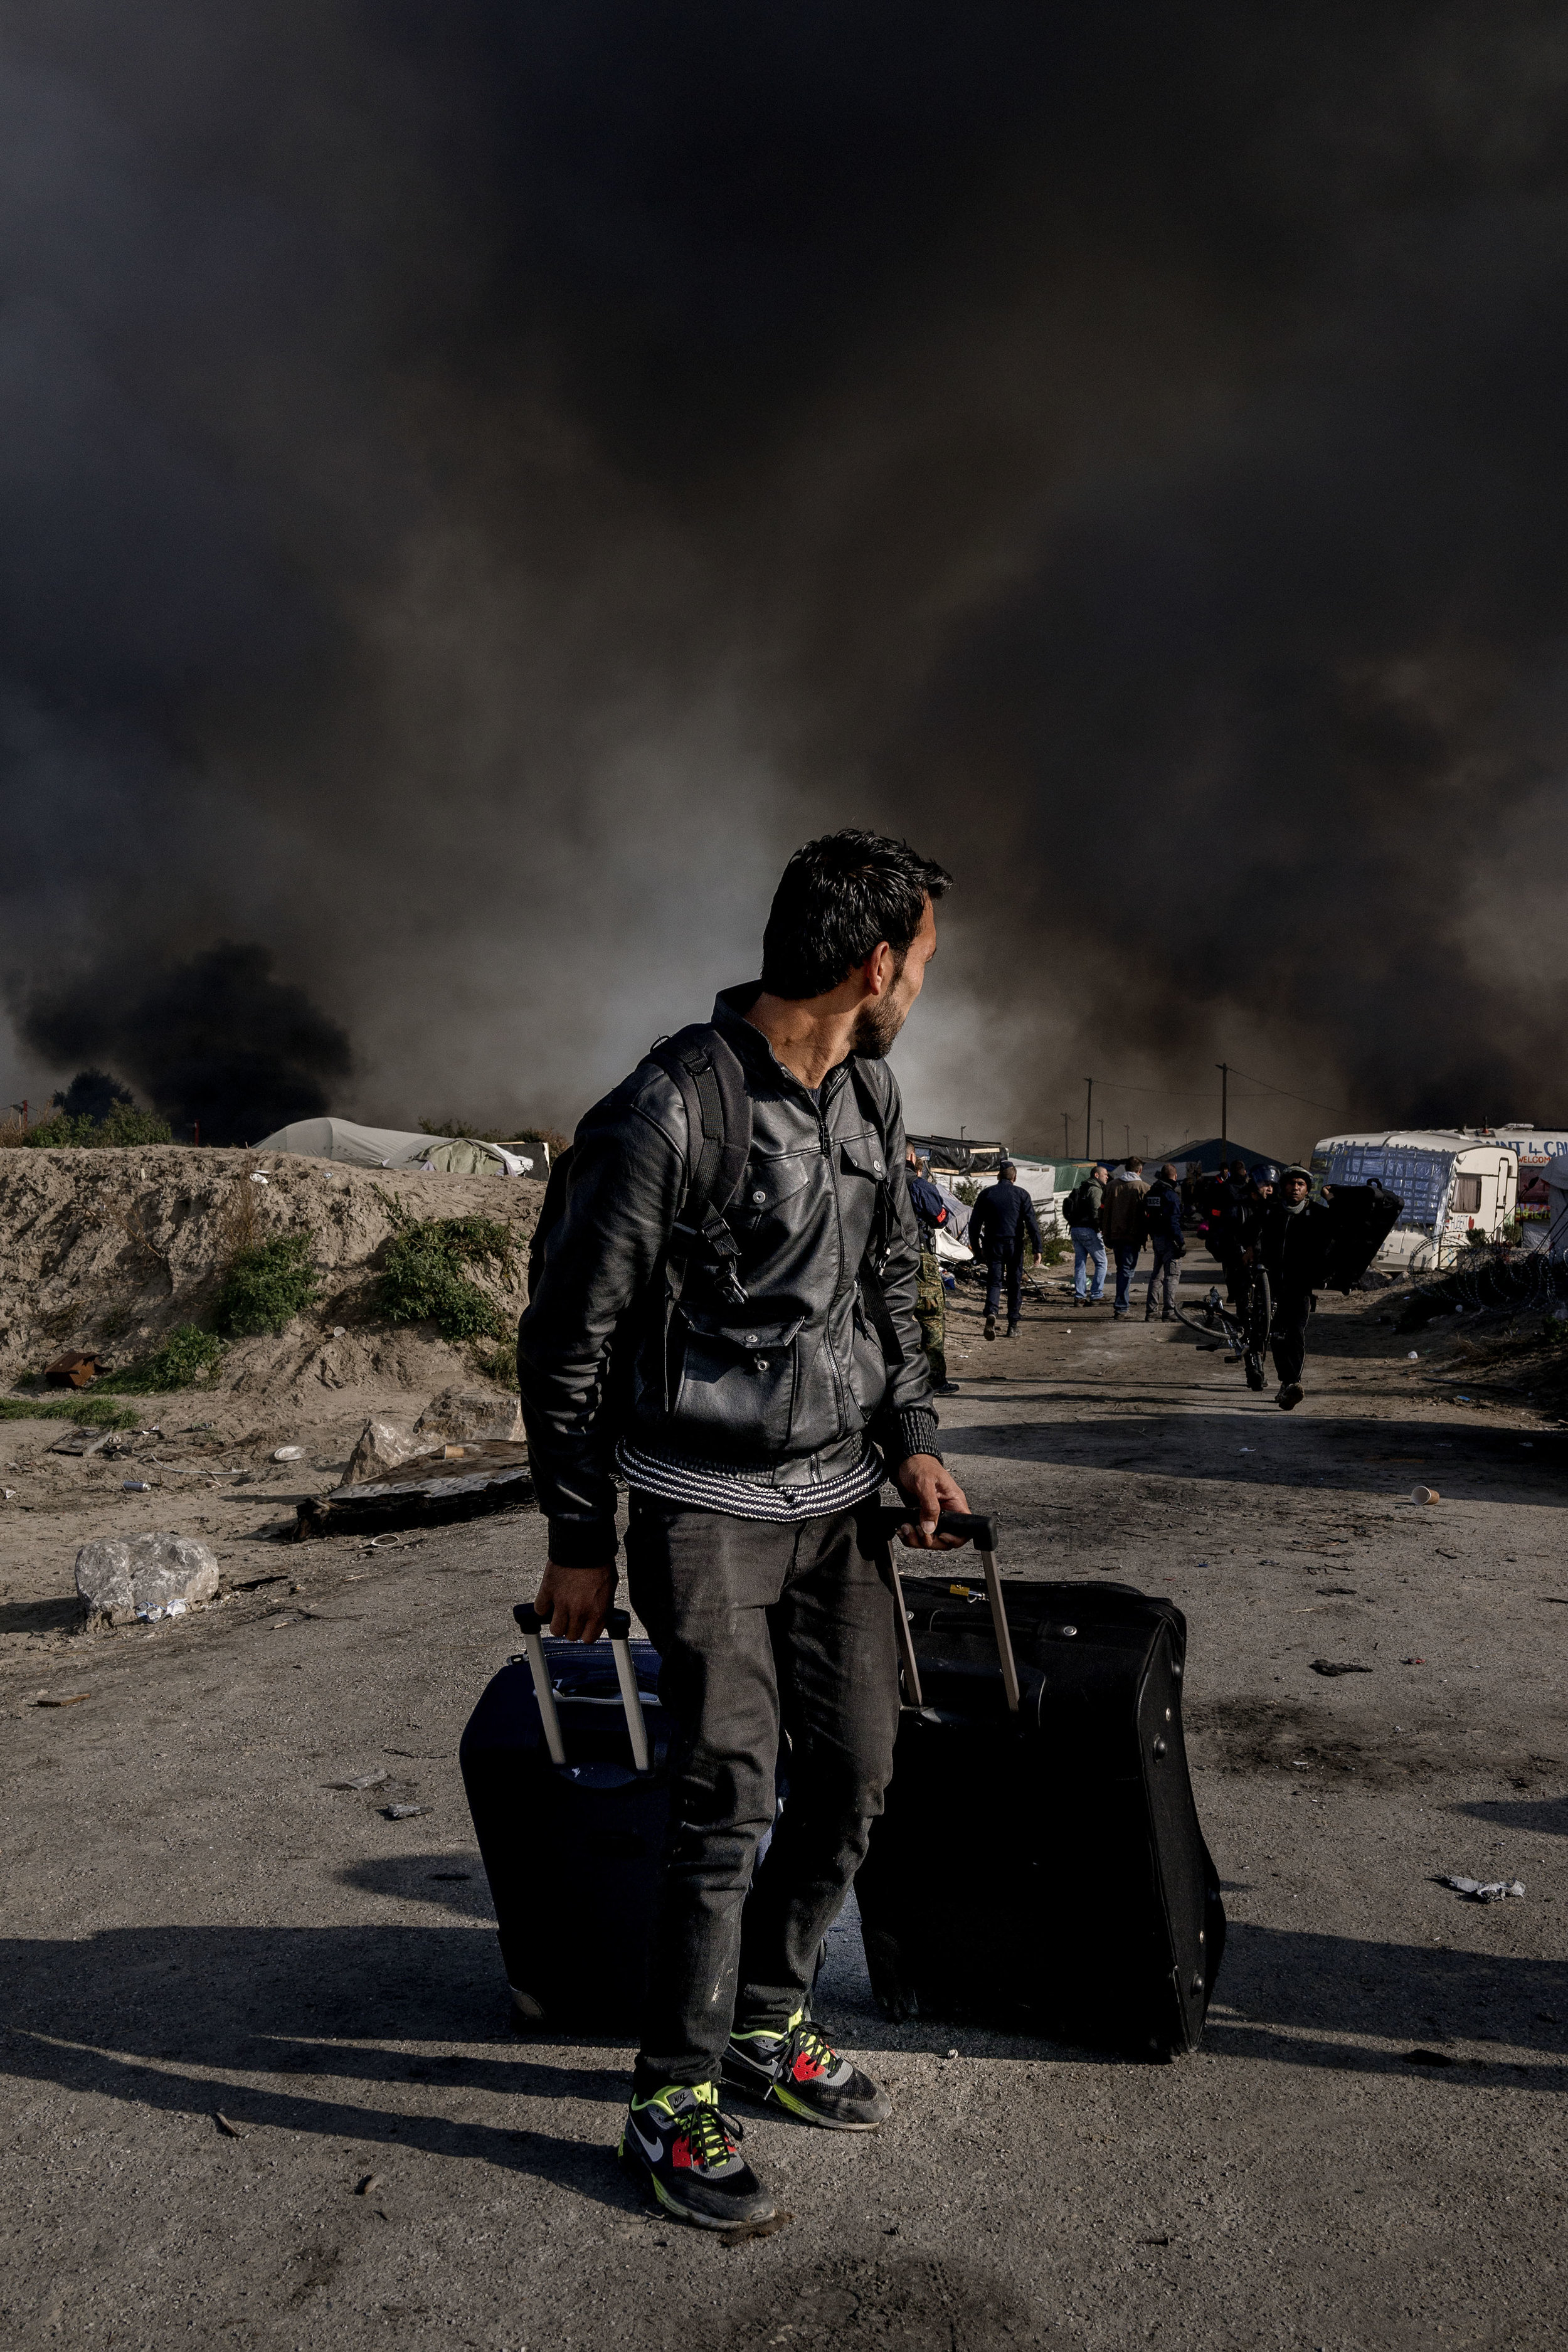 26th October 2016, The Jungle of Calais in France is in huge fire. Refugee leave the camp.